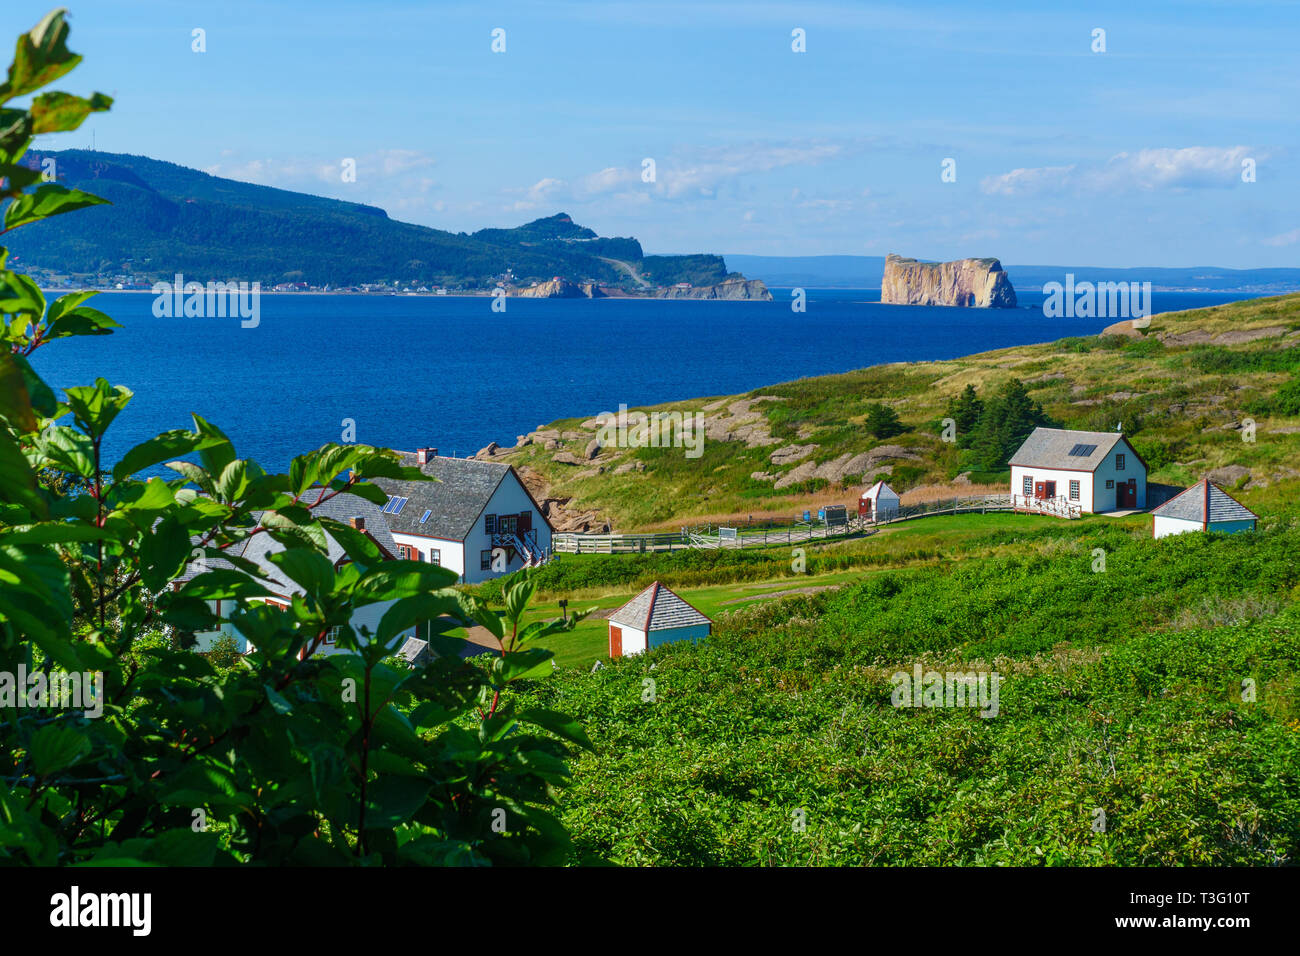 View of the Bonaventure Island and the Perce rock, at the tip of Gaspe Peninsula, Quebec, Canada - Stock Image